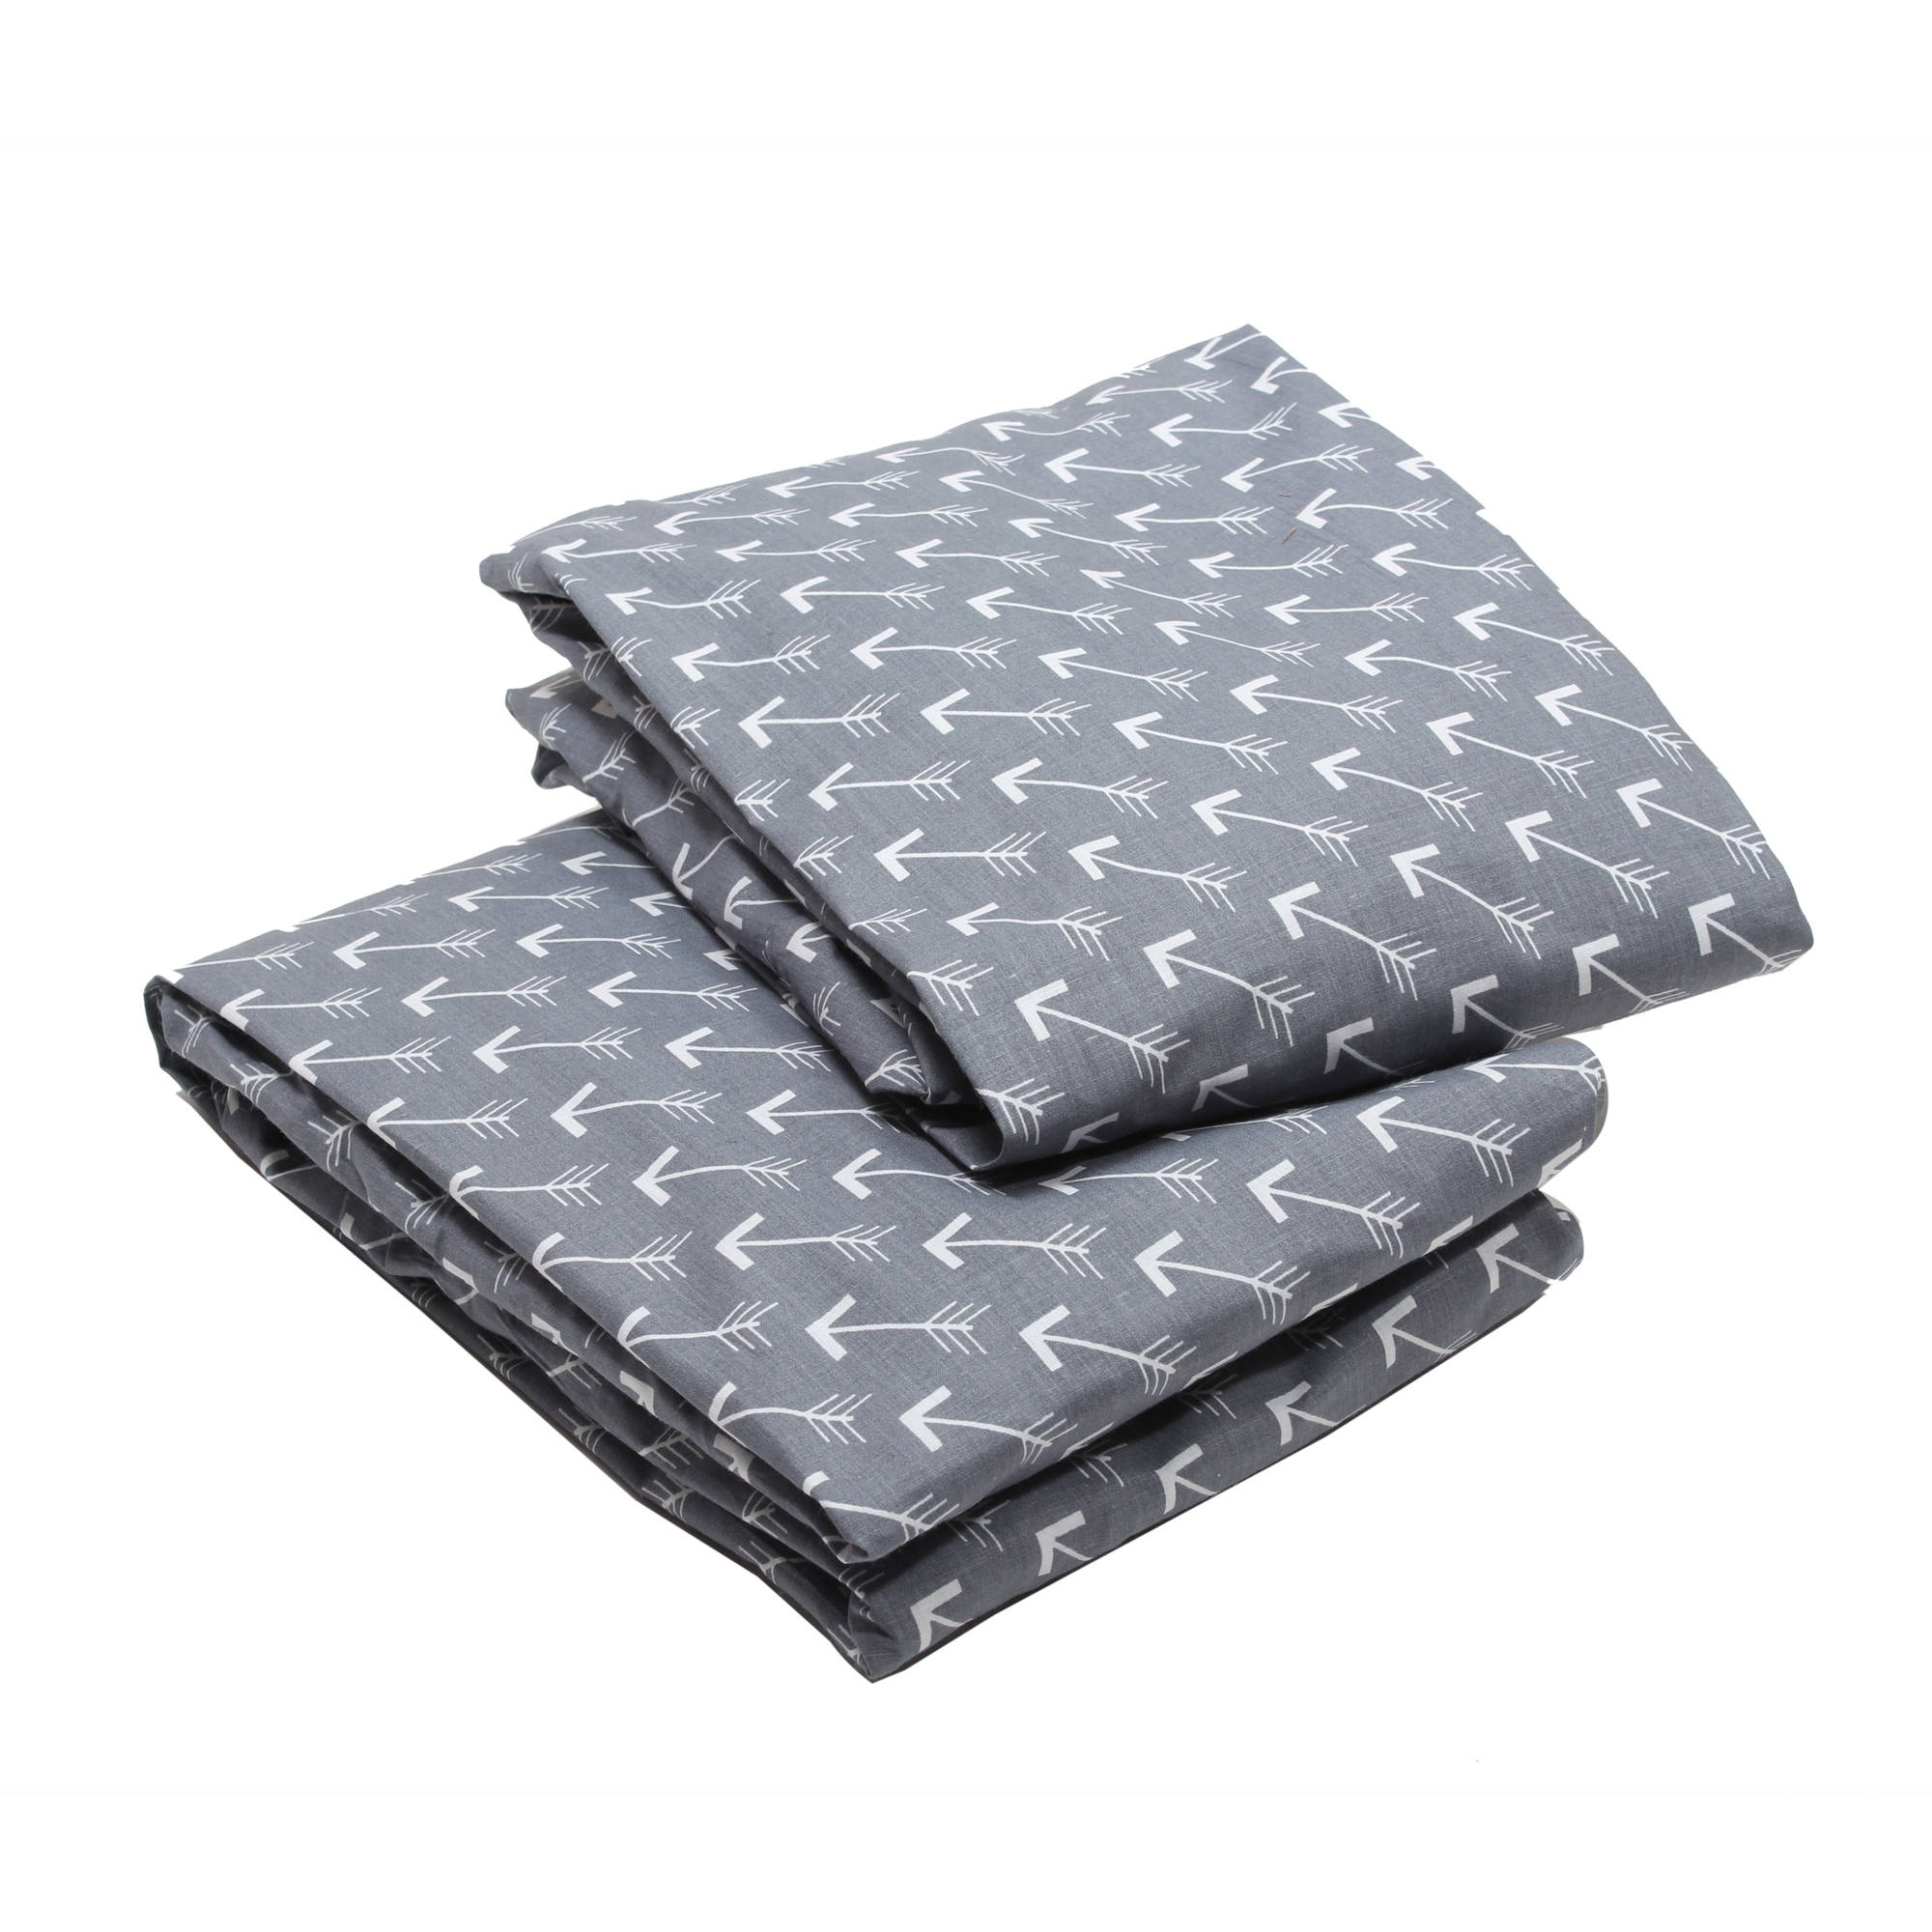 Bacati - Arrows Crib/Toddler Bed Fitted Sheets 100% Cotton Percale, Grey/White, 2-Pack